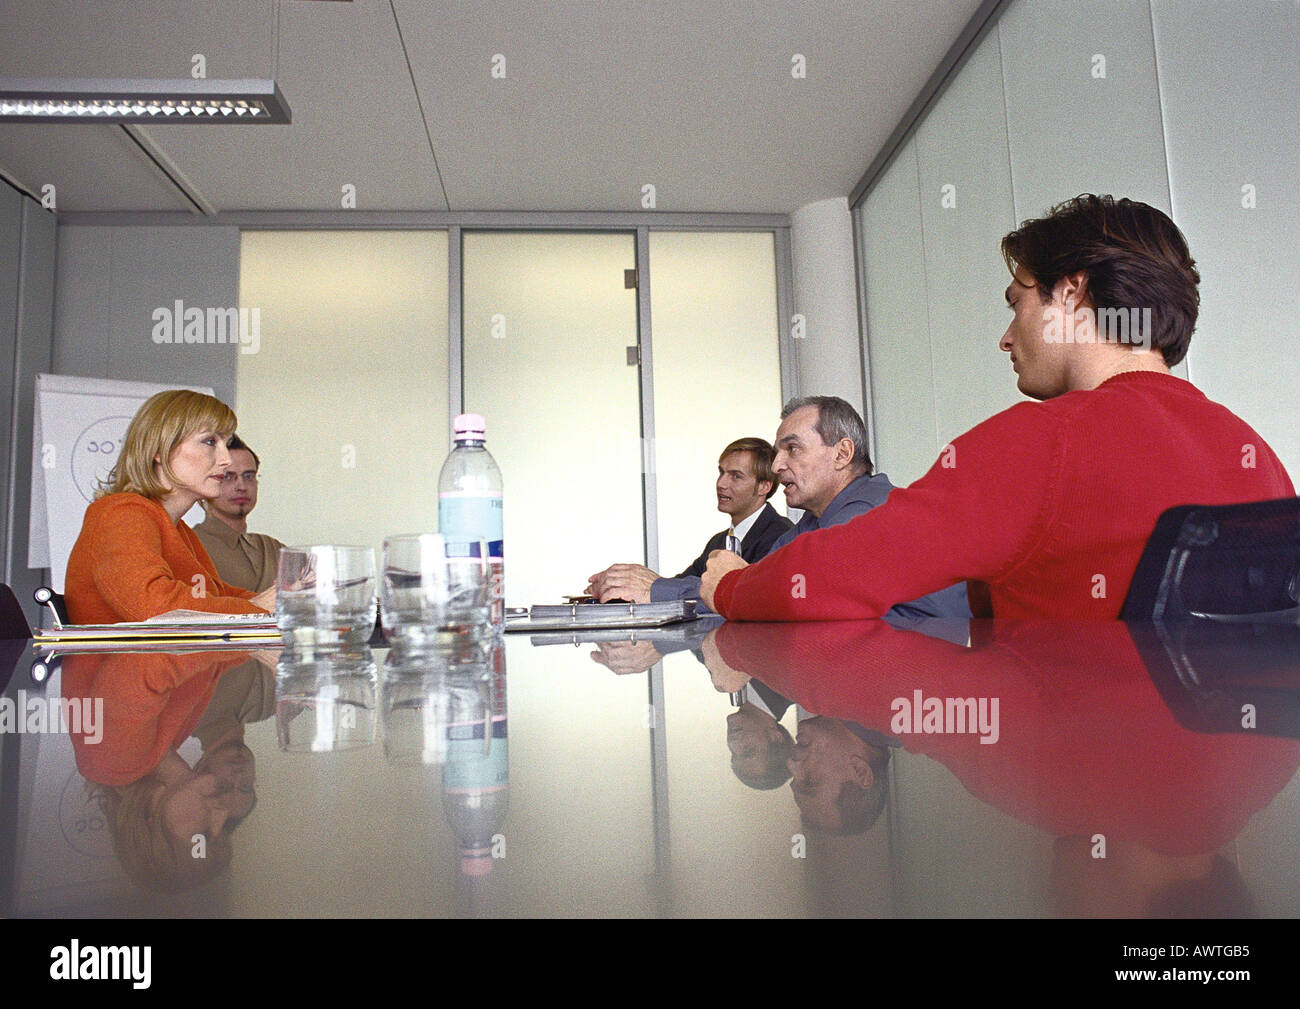 Business people sitting at table in meeting  room. Stock Photo